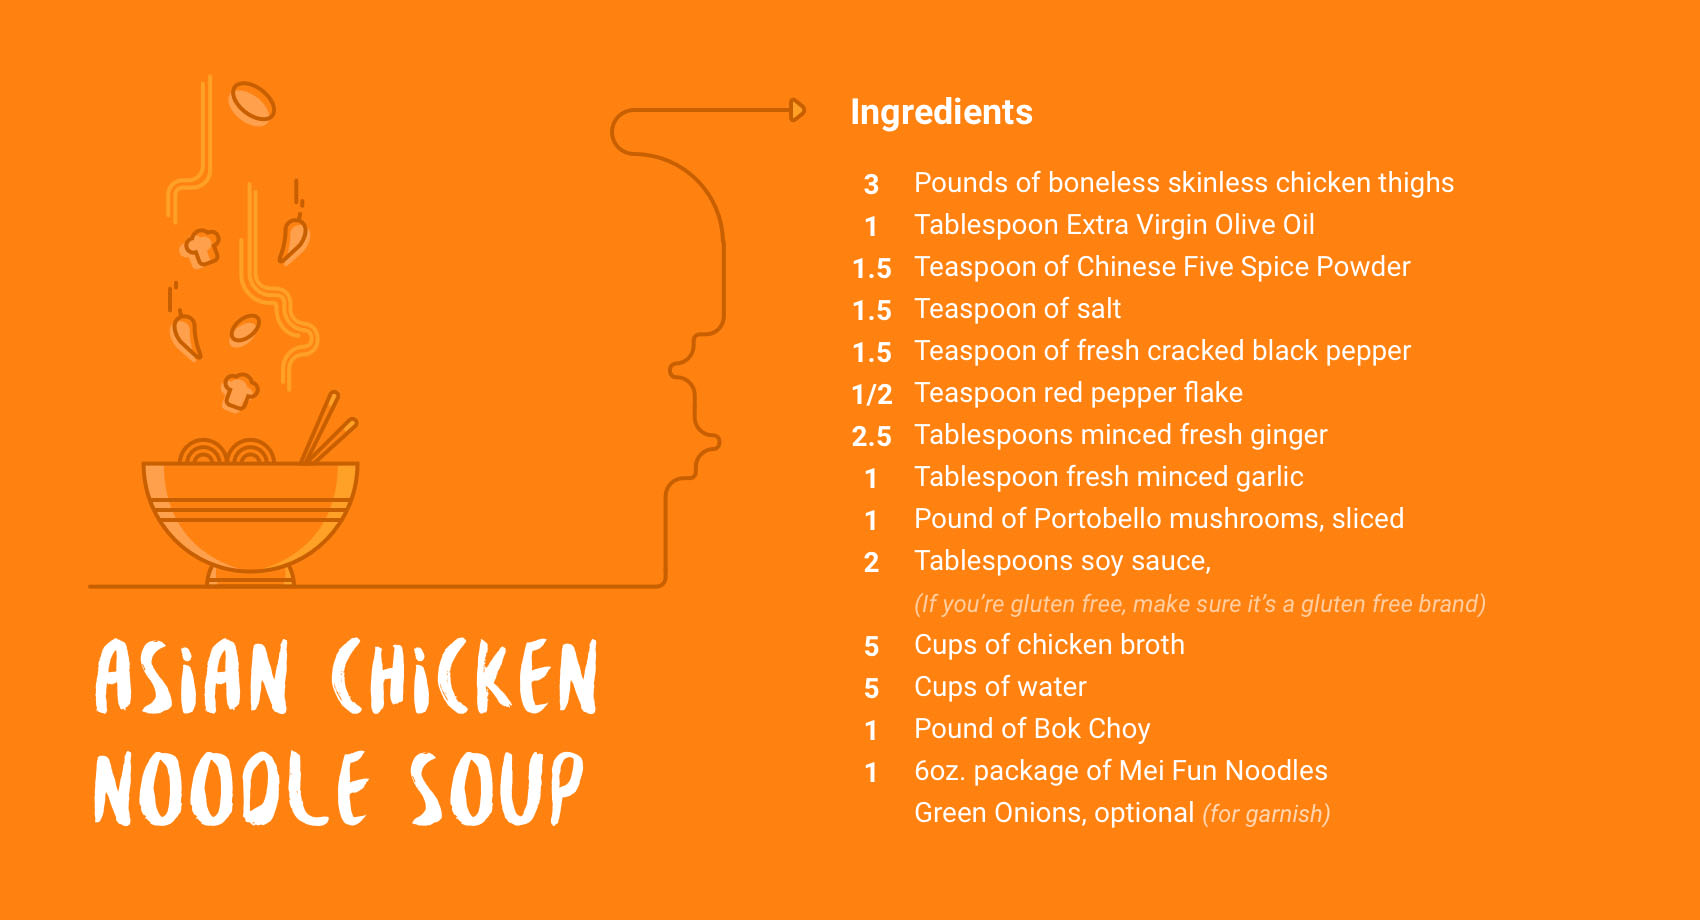 Download this free printable for the ingredients for Asian Chicken Noodle Soup!